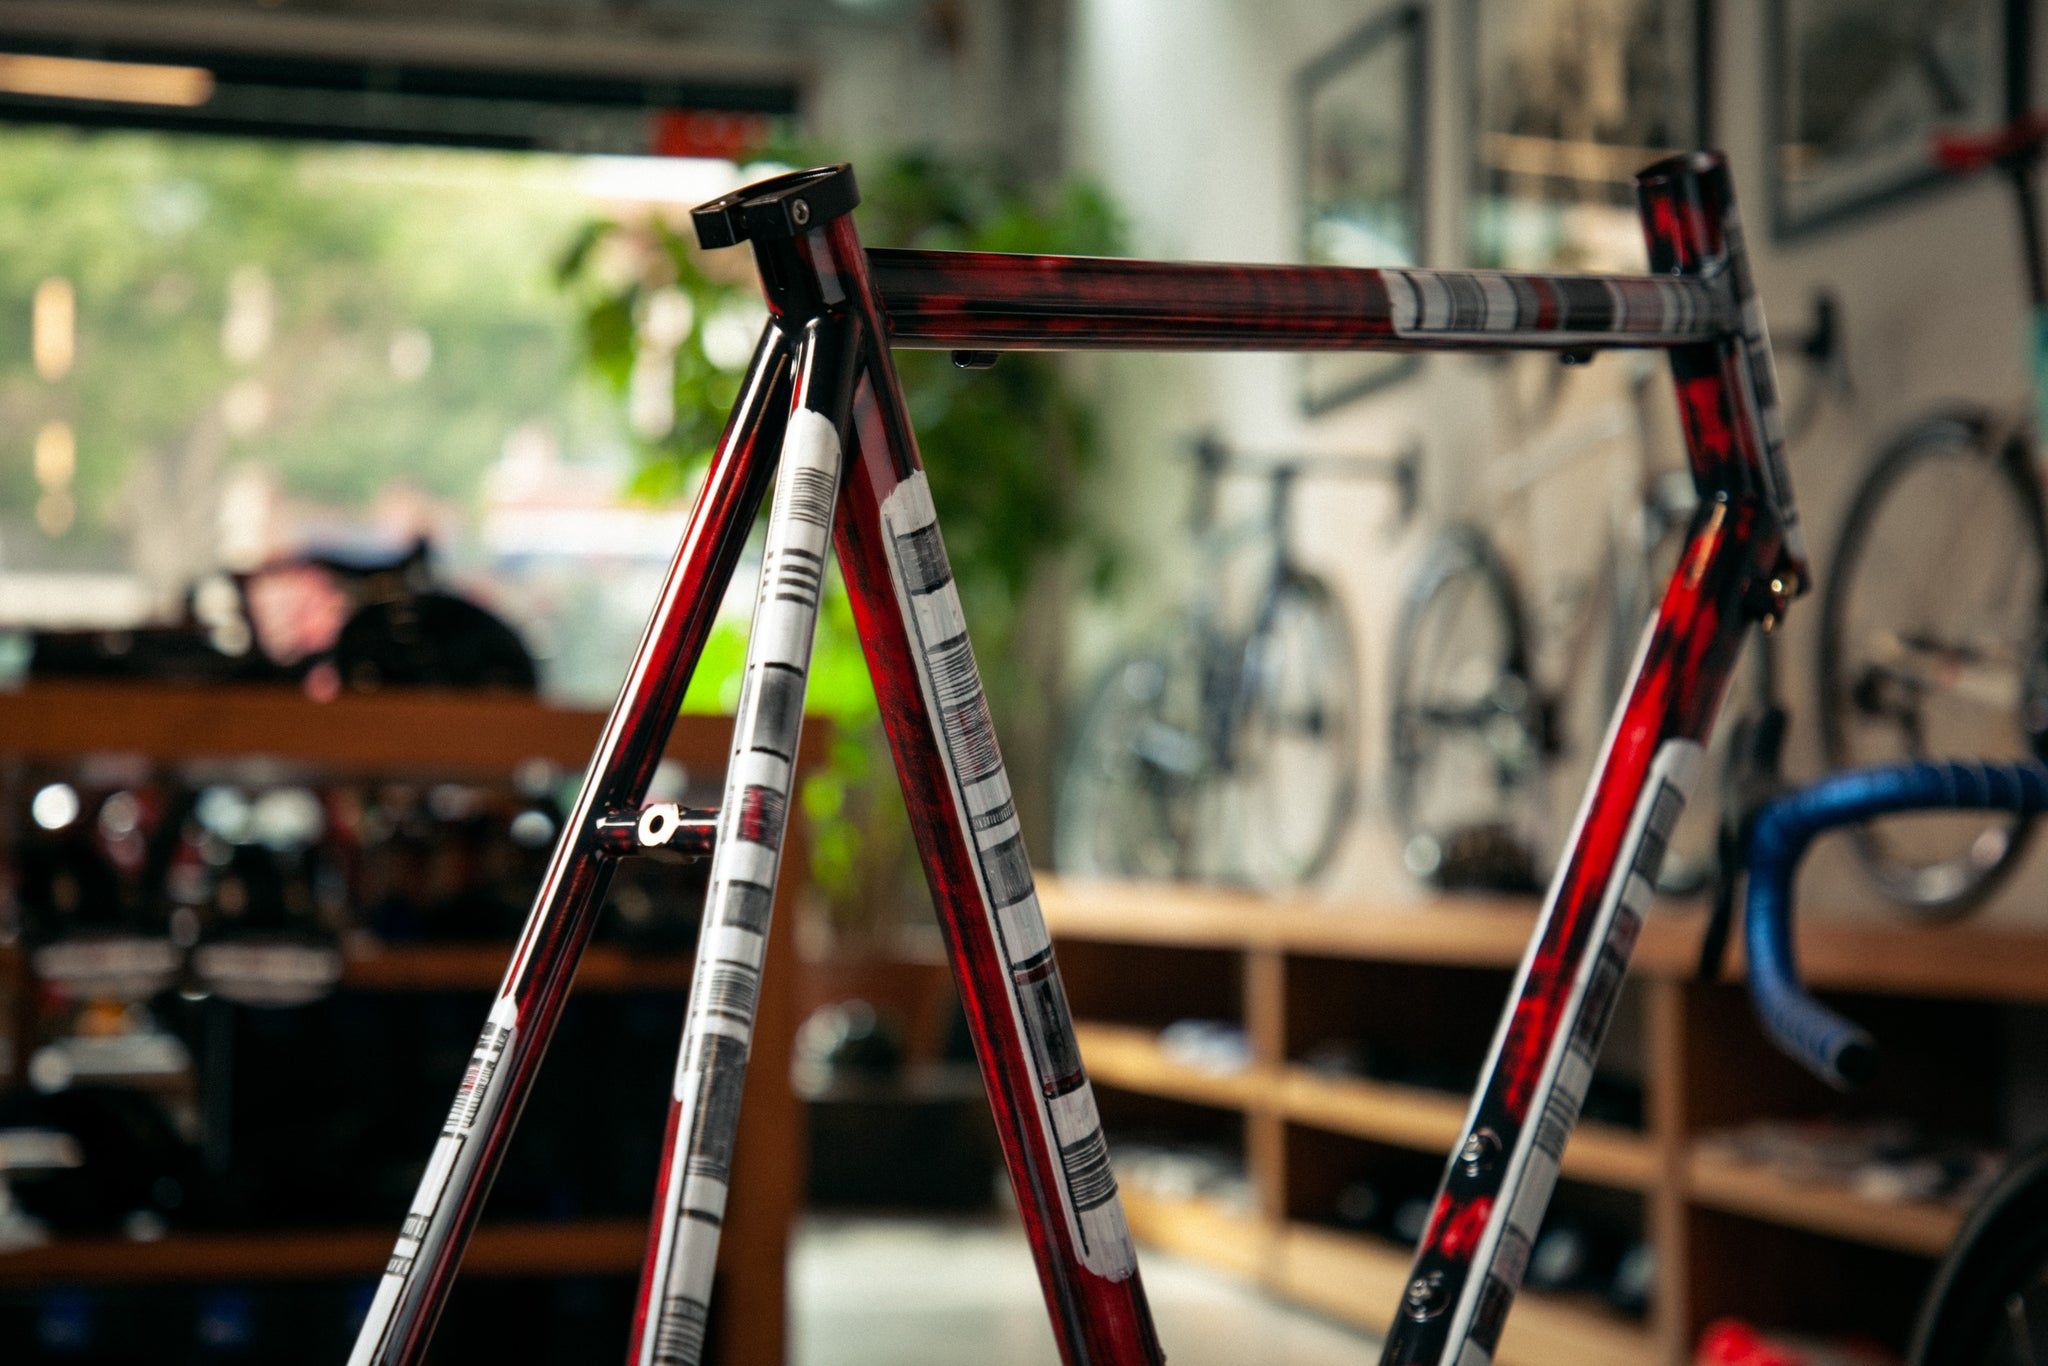 https://abovecategorycycling.com/blogs/gallery/gallery-a-wine-red-pegoretti-mxxxxxo frameset 3